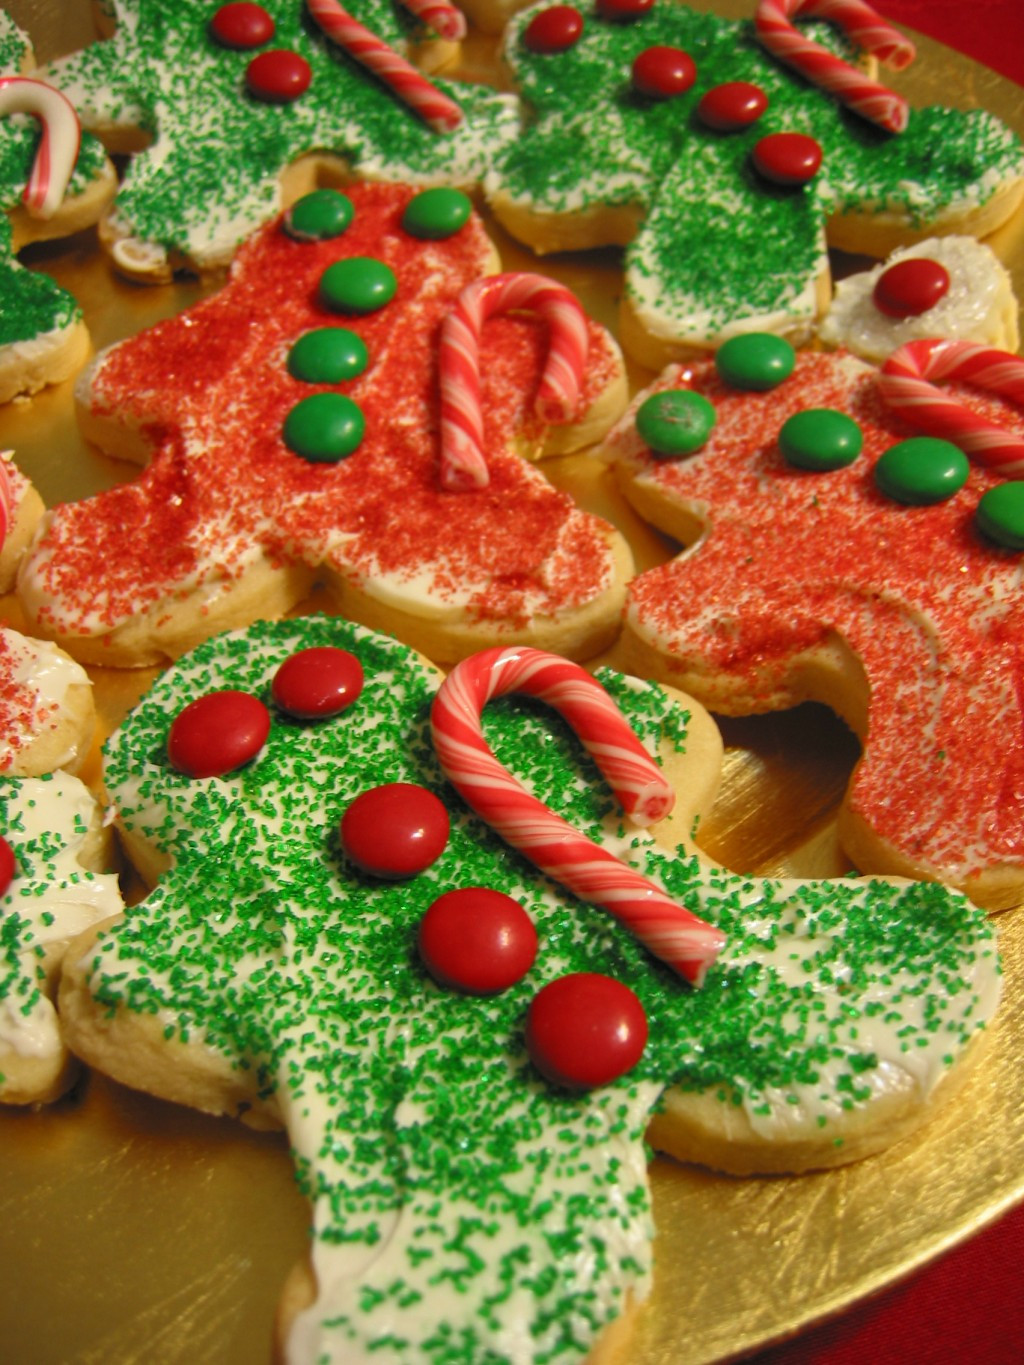 Easy Decorative Christmas Cookies  Decorate Gingerbread Men Quick and Easy Christmas Cookies